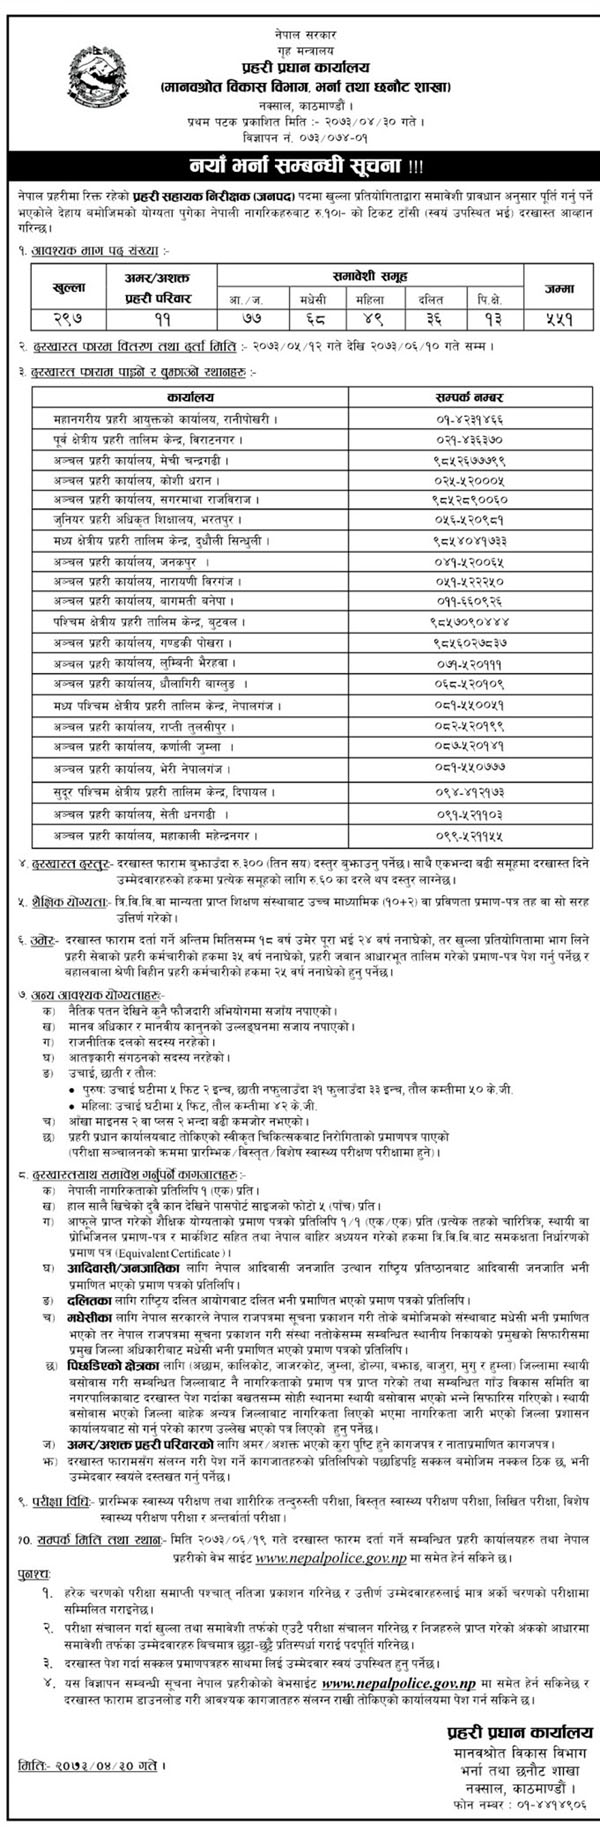 Nepal Police Announces Vacancy For Police Sub-Inspector, Nepal